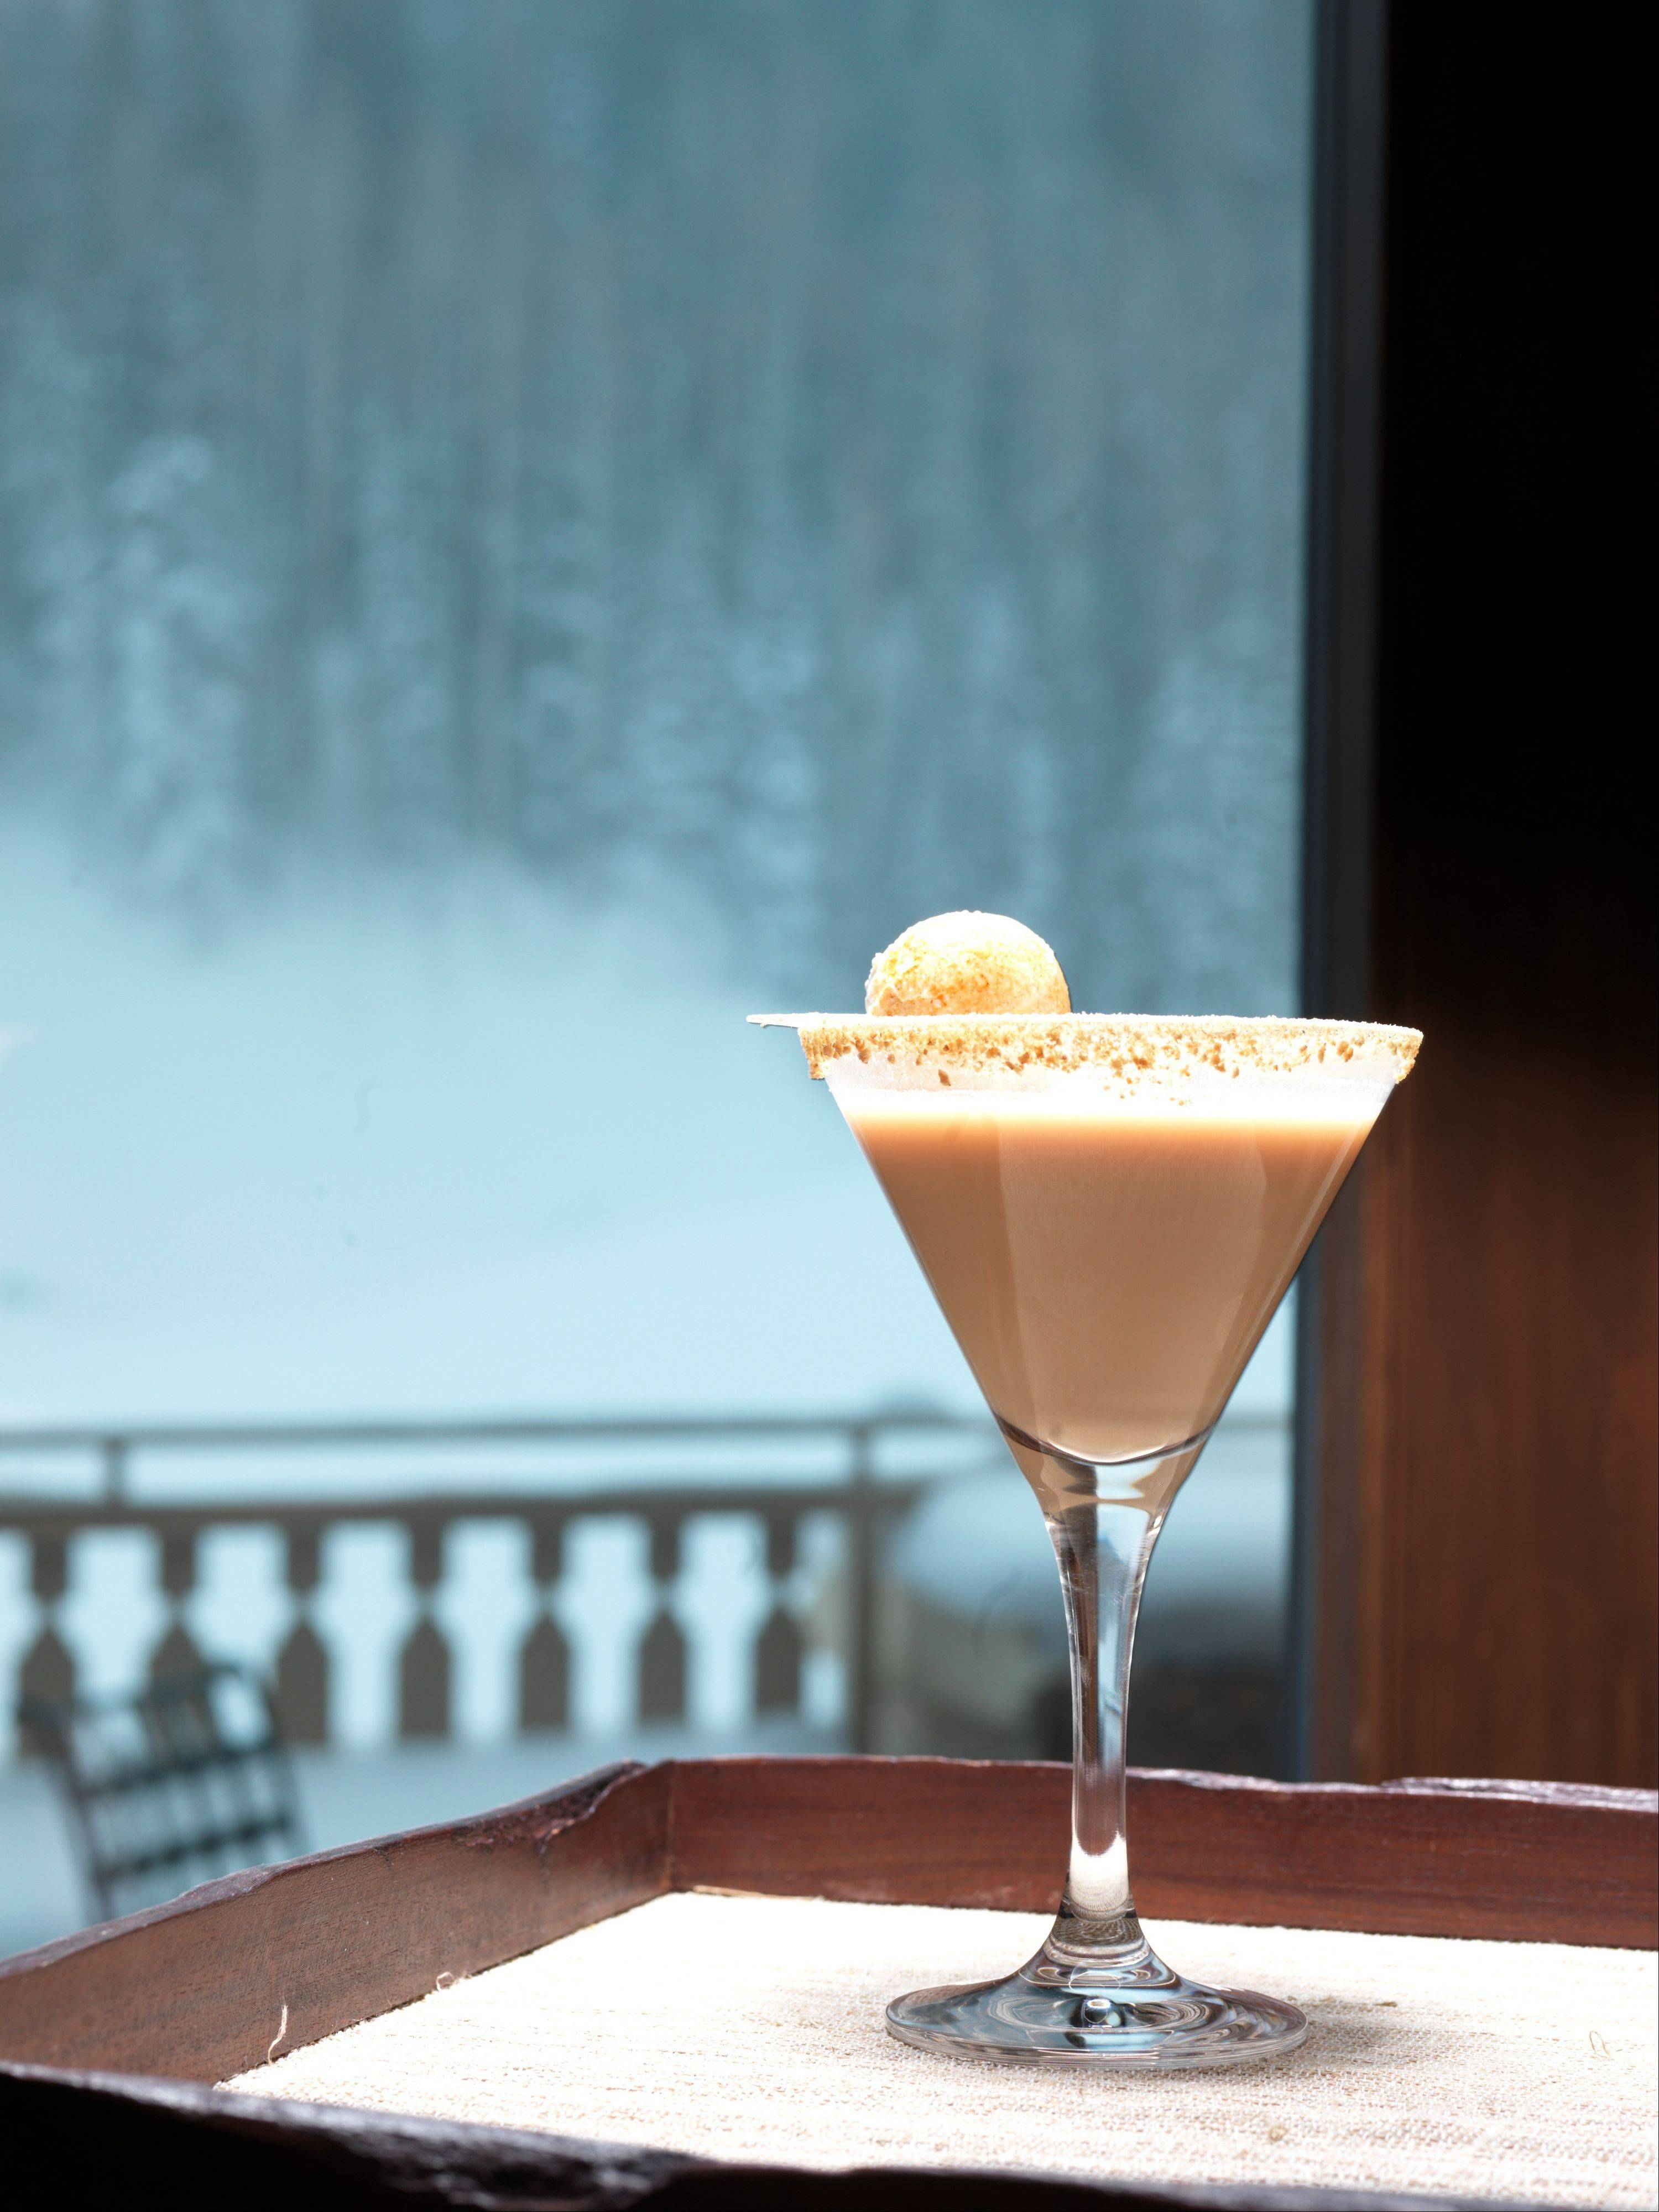 This undated photo provided by the Montage Deer Valley in Park City, Utah, shows a martini served at the resort that's named for S'mores, the classic childhood treat of melted chocolate and marshmallow on a graham cracker. The cocktail includes Baileys Irish cream, vodka, cocoa and graham cracker. It's one of a number of specialty drinks offered for the apr�s ski crowd at resort areas around the West.